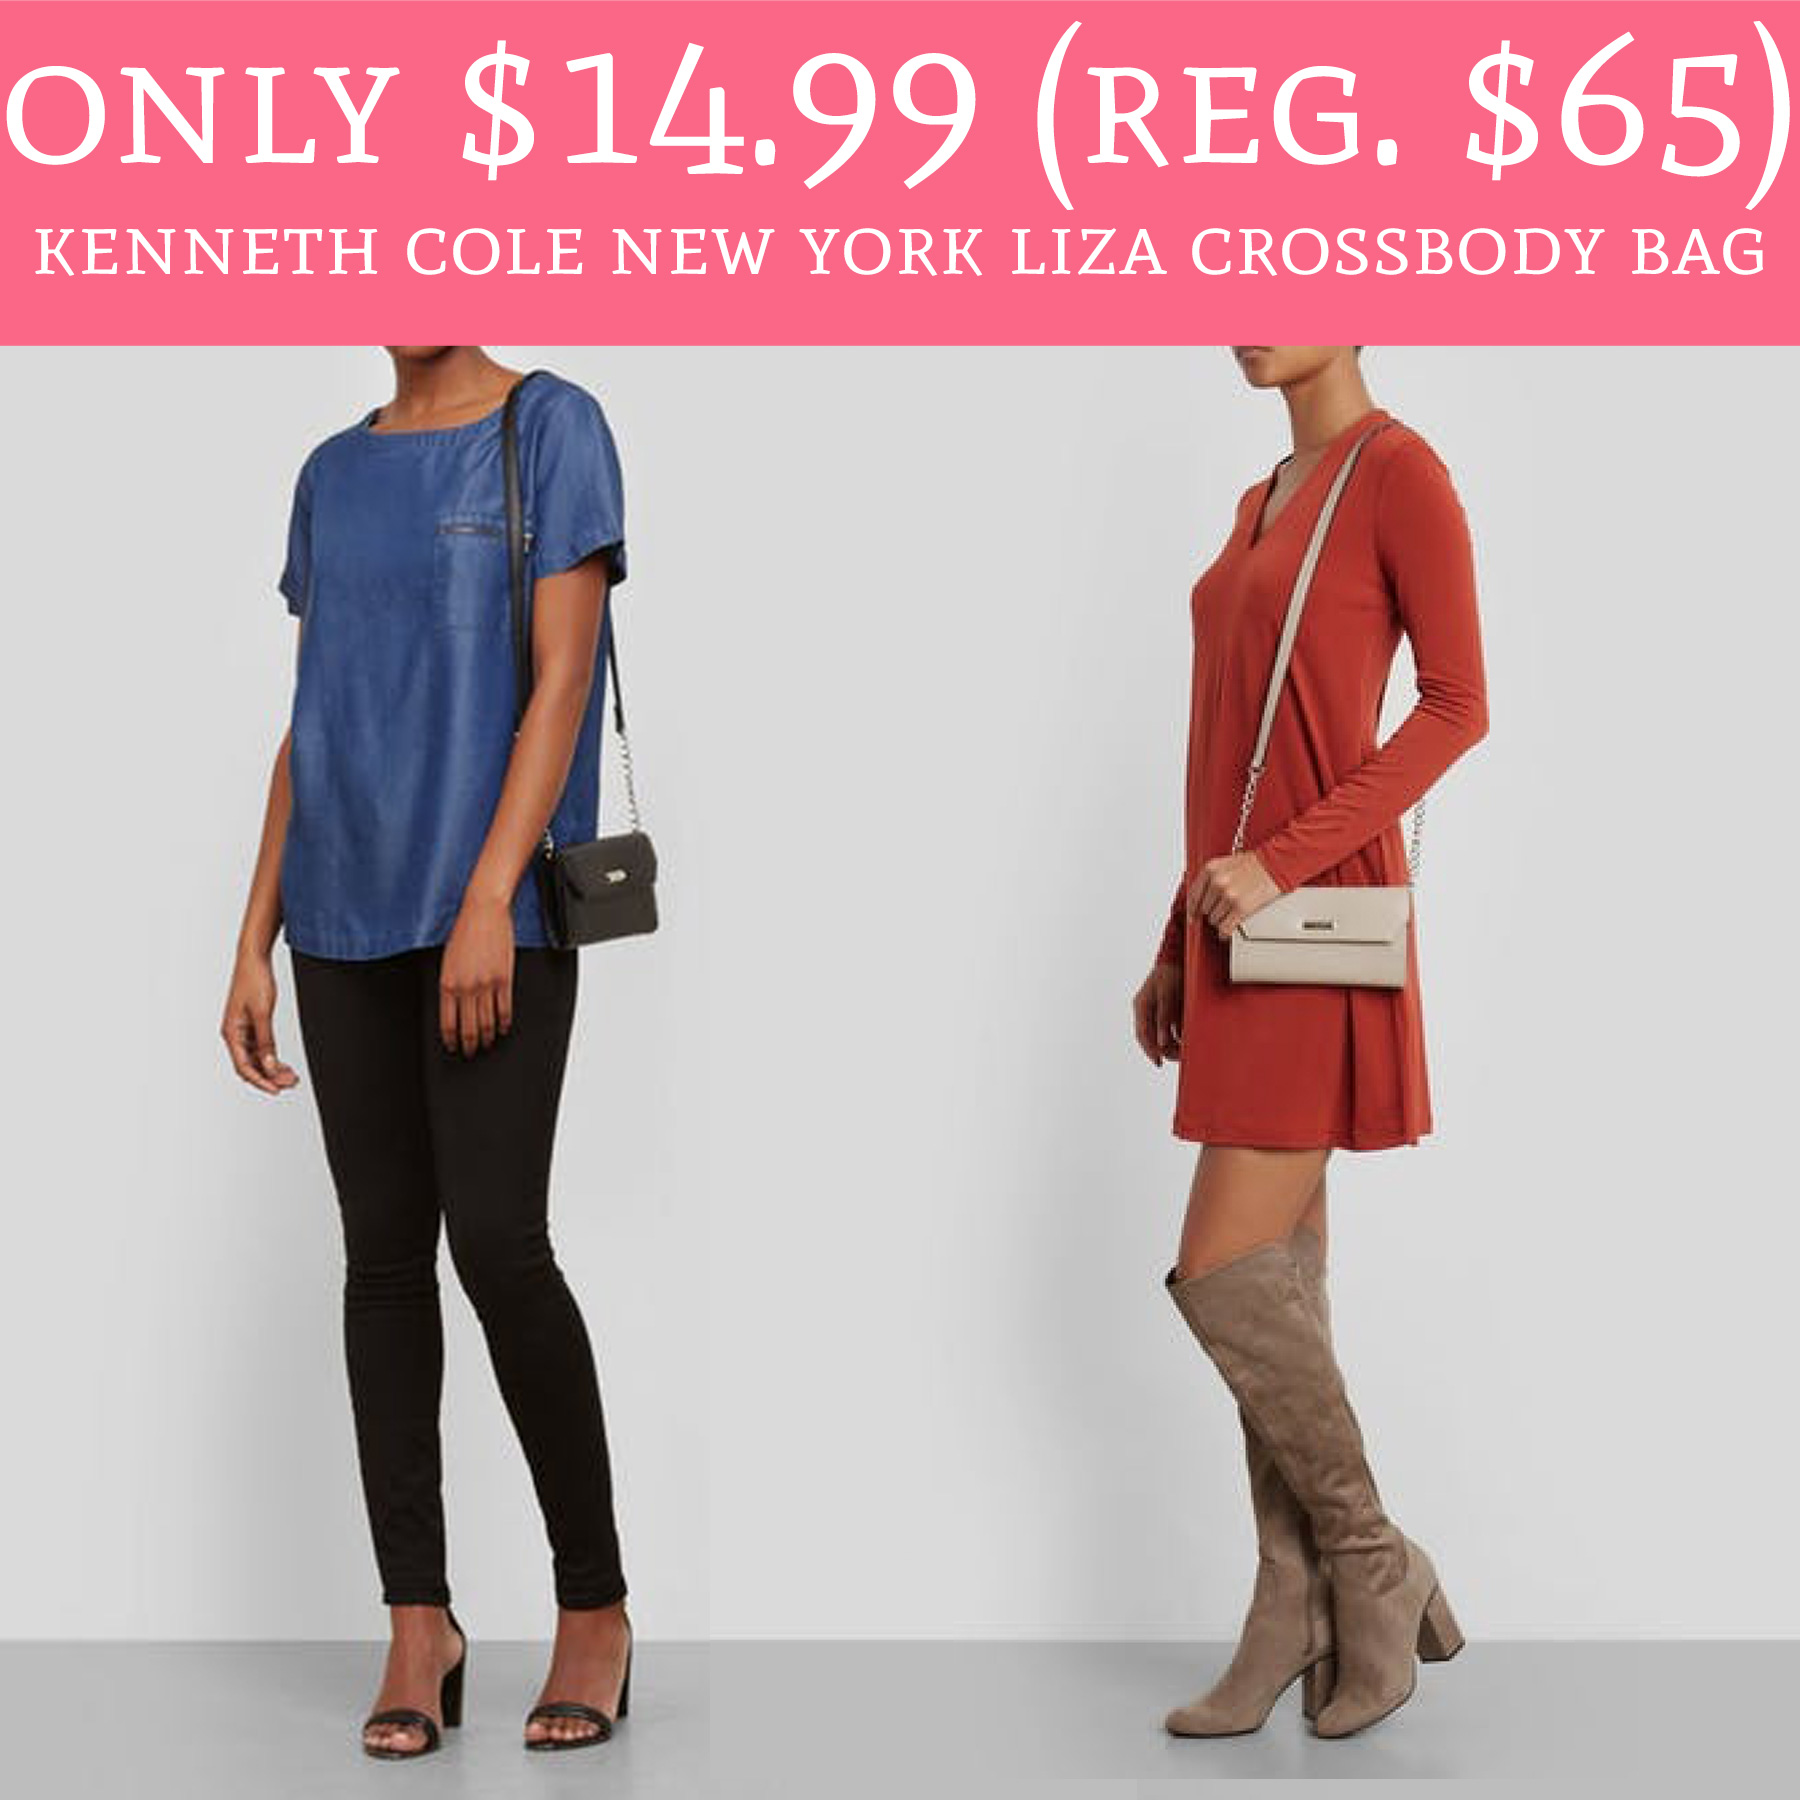 d02784ce2 Only $14.99 (Regular $65) Kenneth Cole New York Liza Crossbody Bag ...